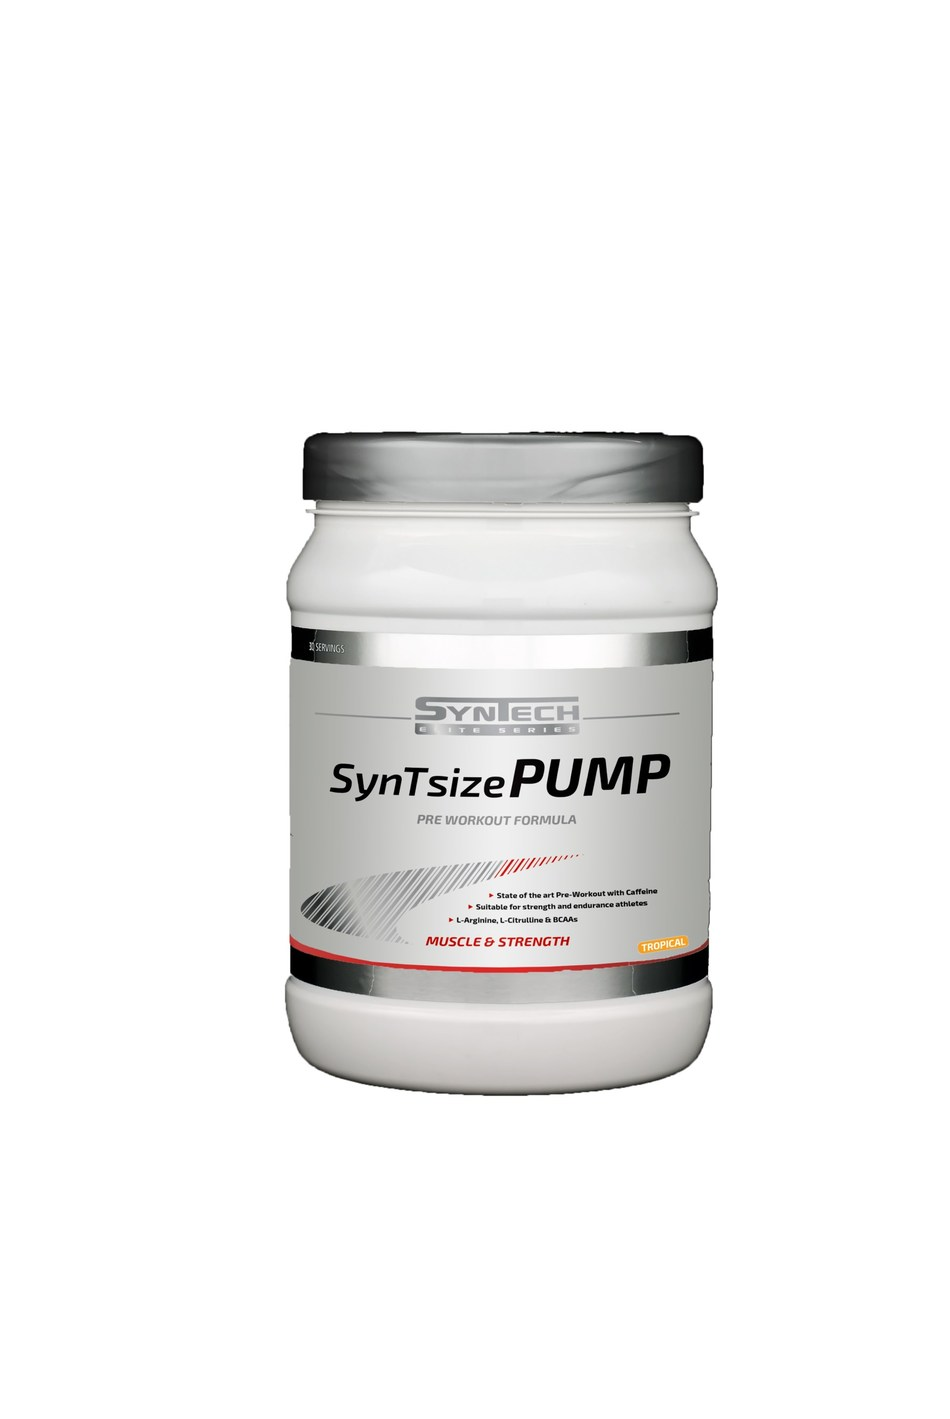 SynTsize Pump is a latest-generation pre-workout product. It includes high dosages of nine active ingredients and contains 2g BCAAs per serving which maintains amino acid levels during training.